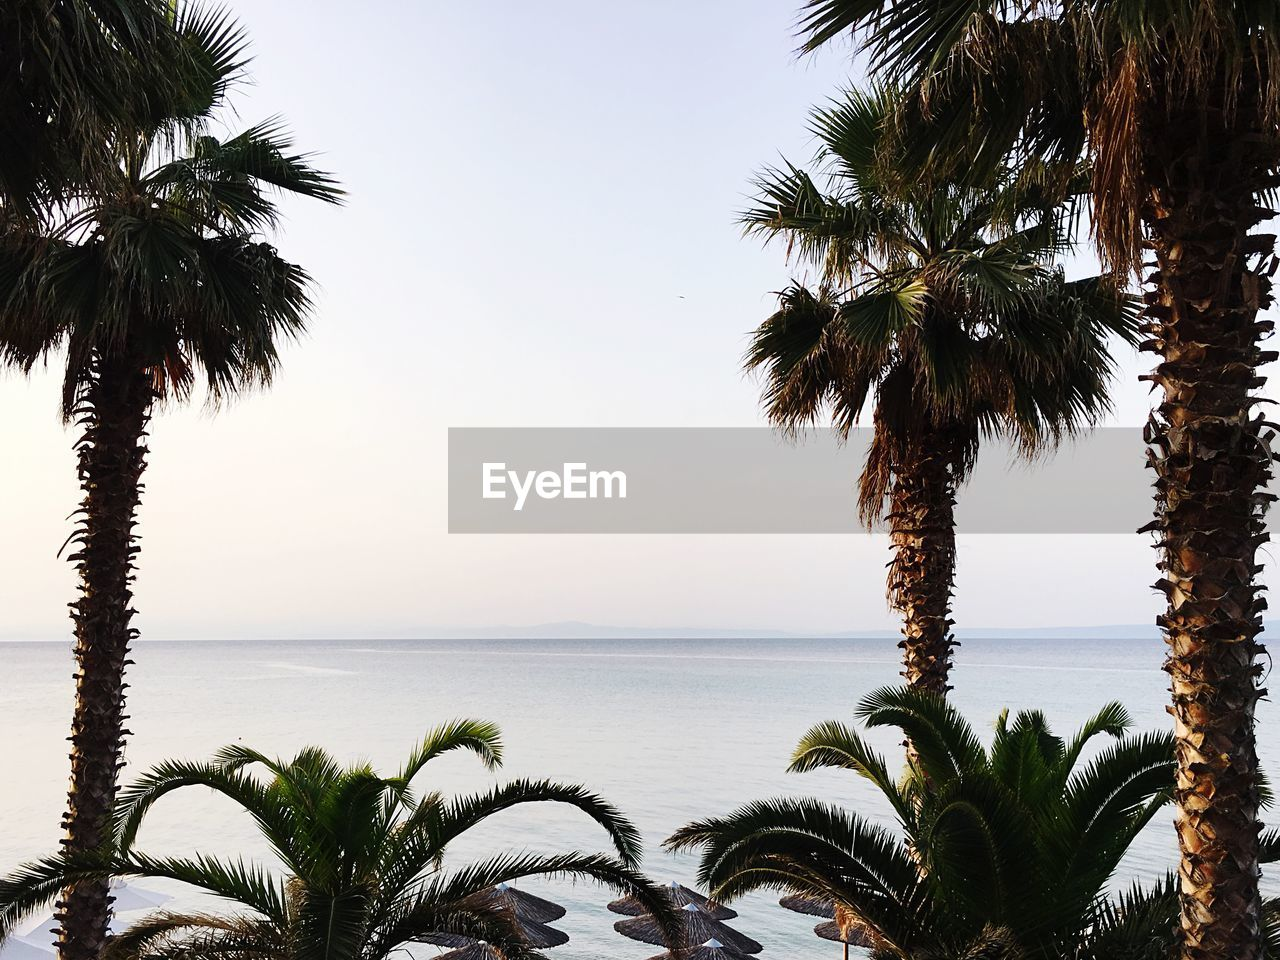 tropical climate, tree, palm tree, water, sky, sea, plant, growth, scenics - nature, beauty in nature, tranquility, nature, horizon over water, clear sky, tranquil scene, horizon, beach, no people, land, outdoors, coconut palm tree, palm leaf, tropical tree, swimming pool